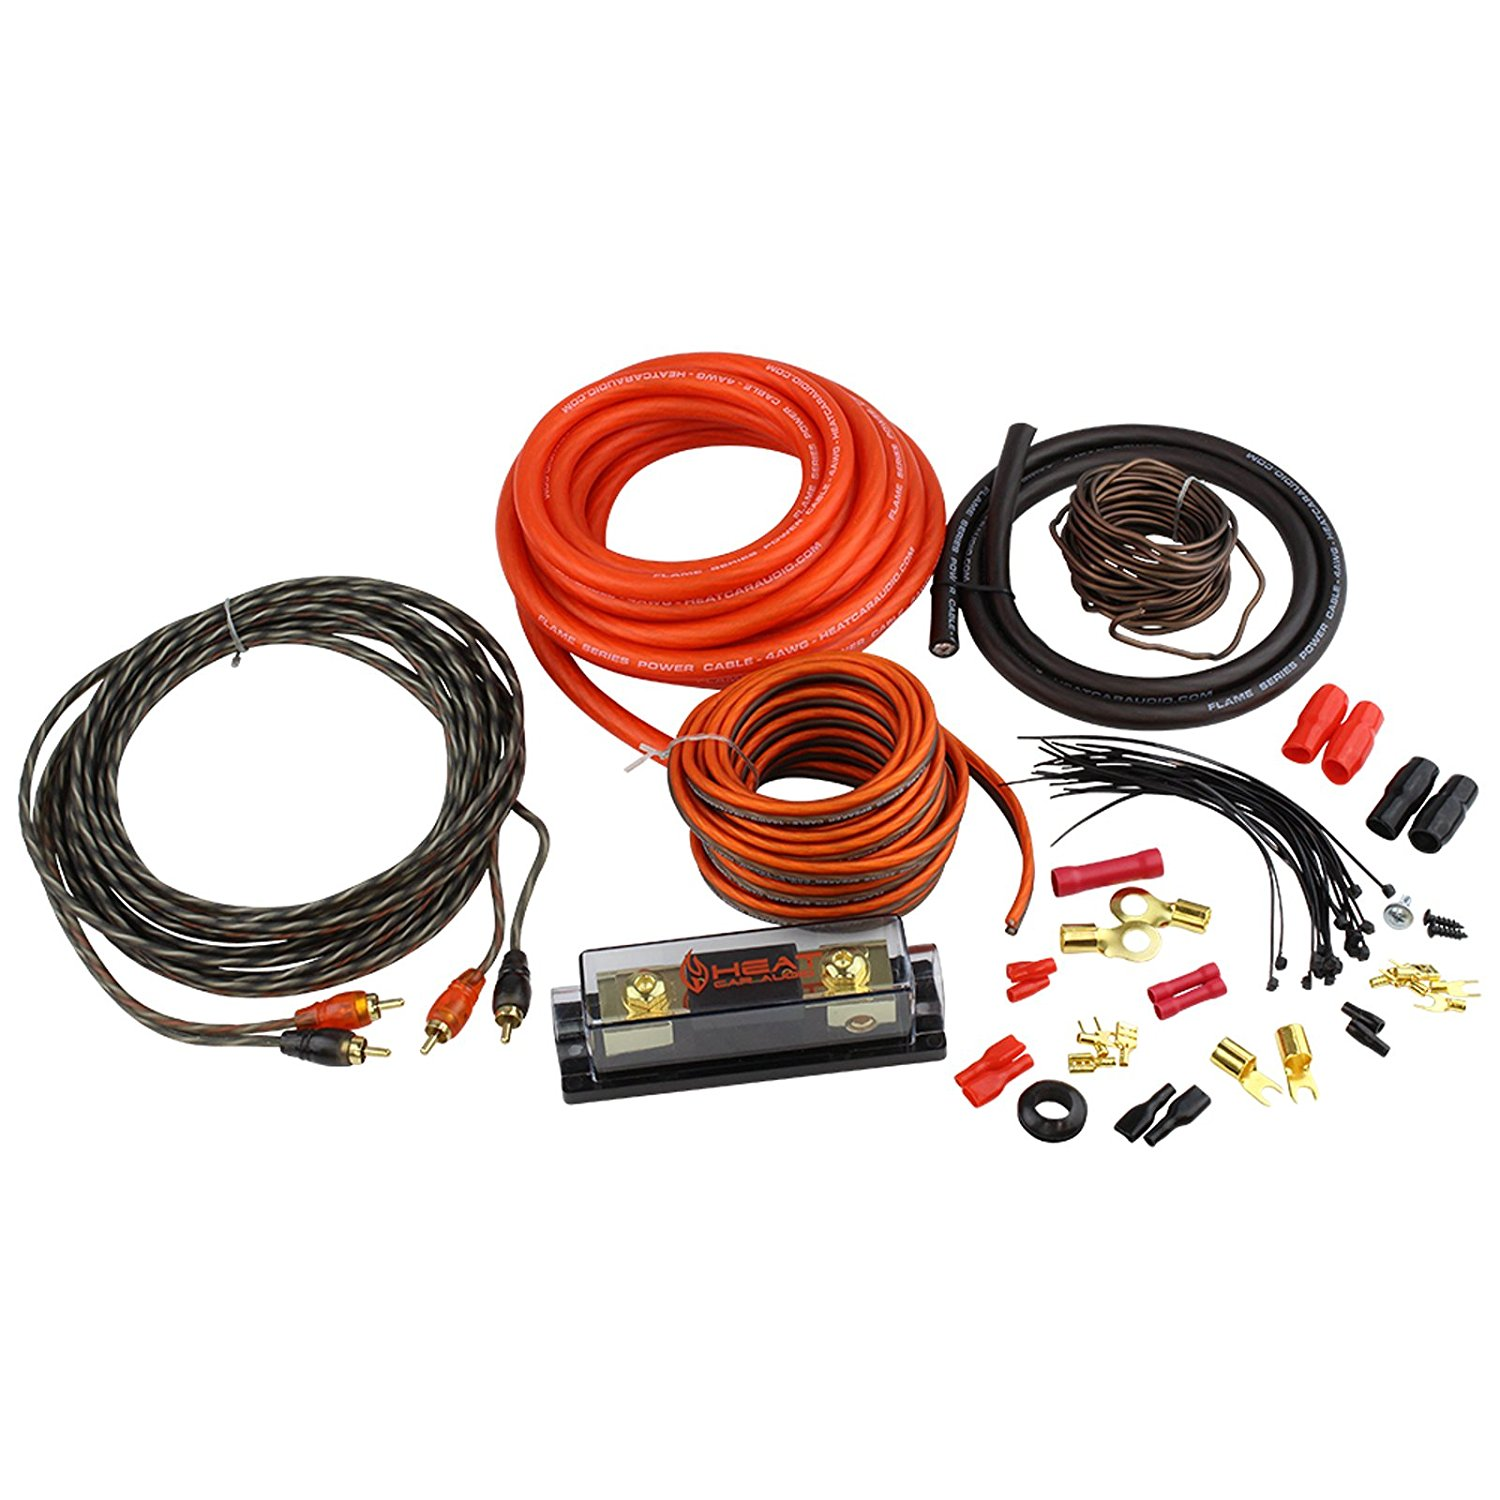 Buy 4 Gauge Car Amplifier Amp Power Installation 100 Ofc Wire Kit Oxygen Free Copper Install Kit4 Wiring